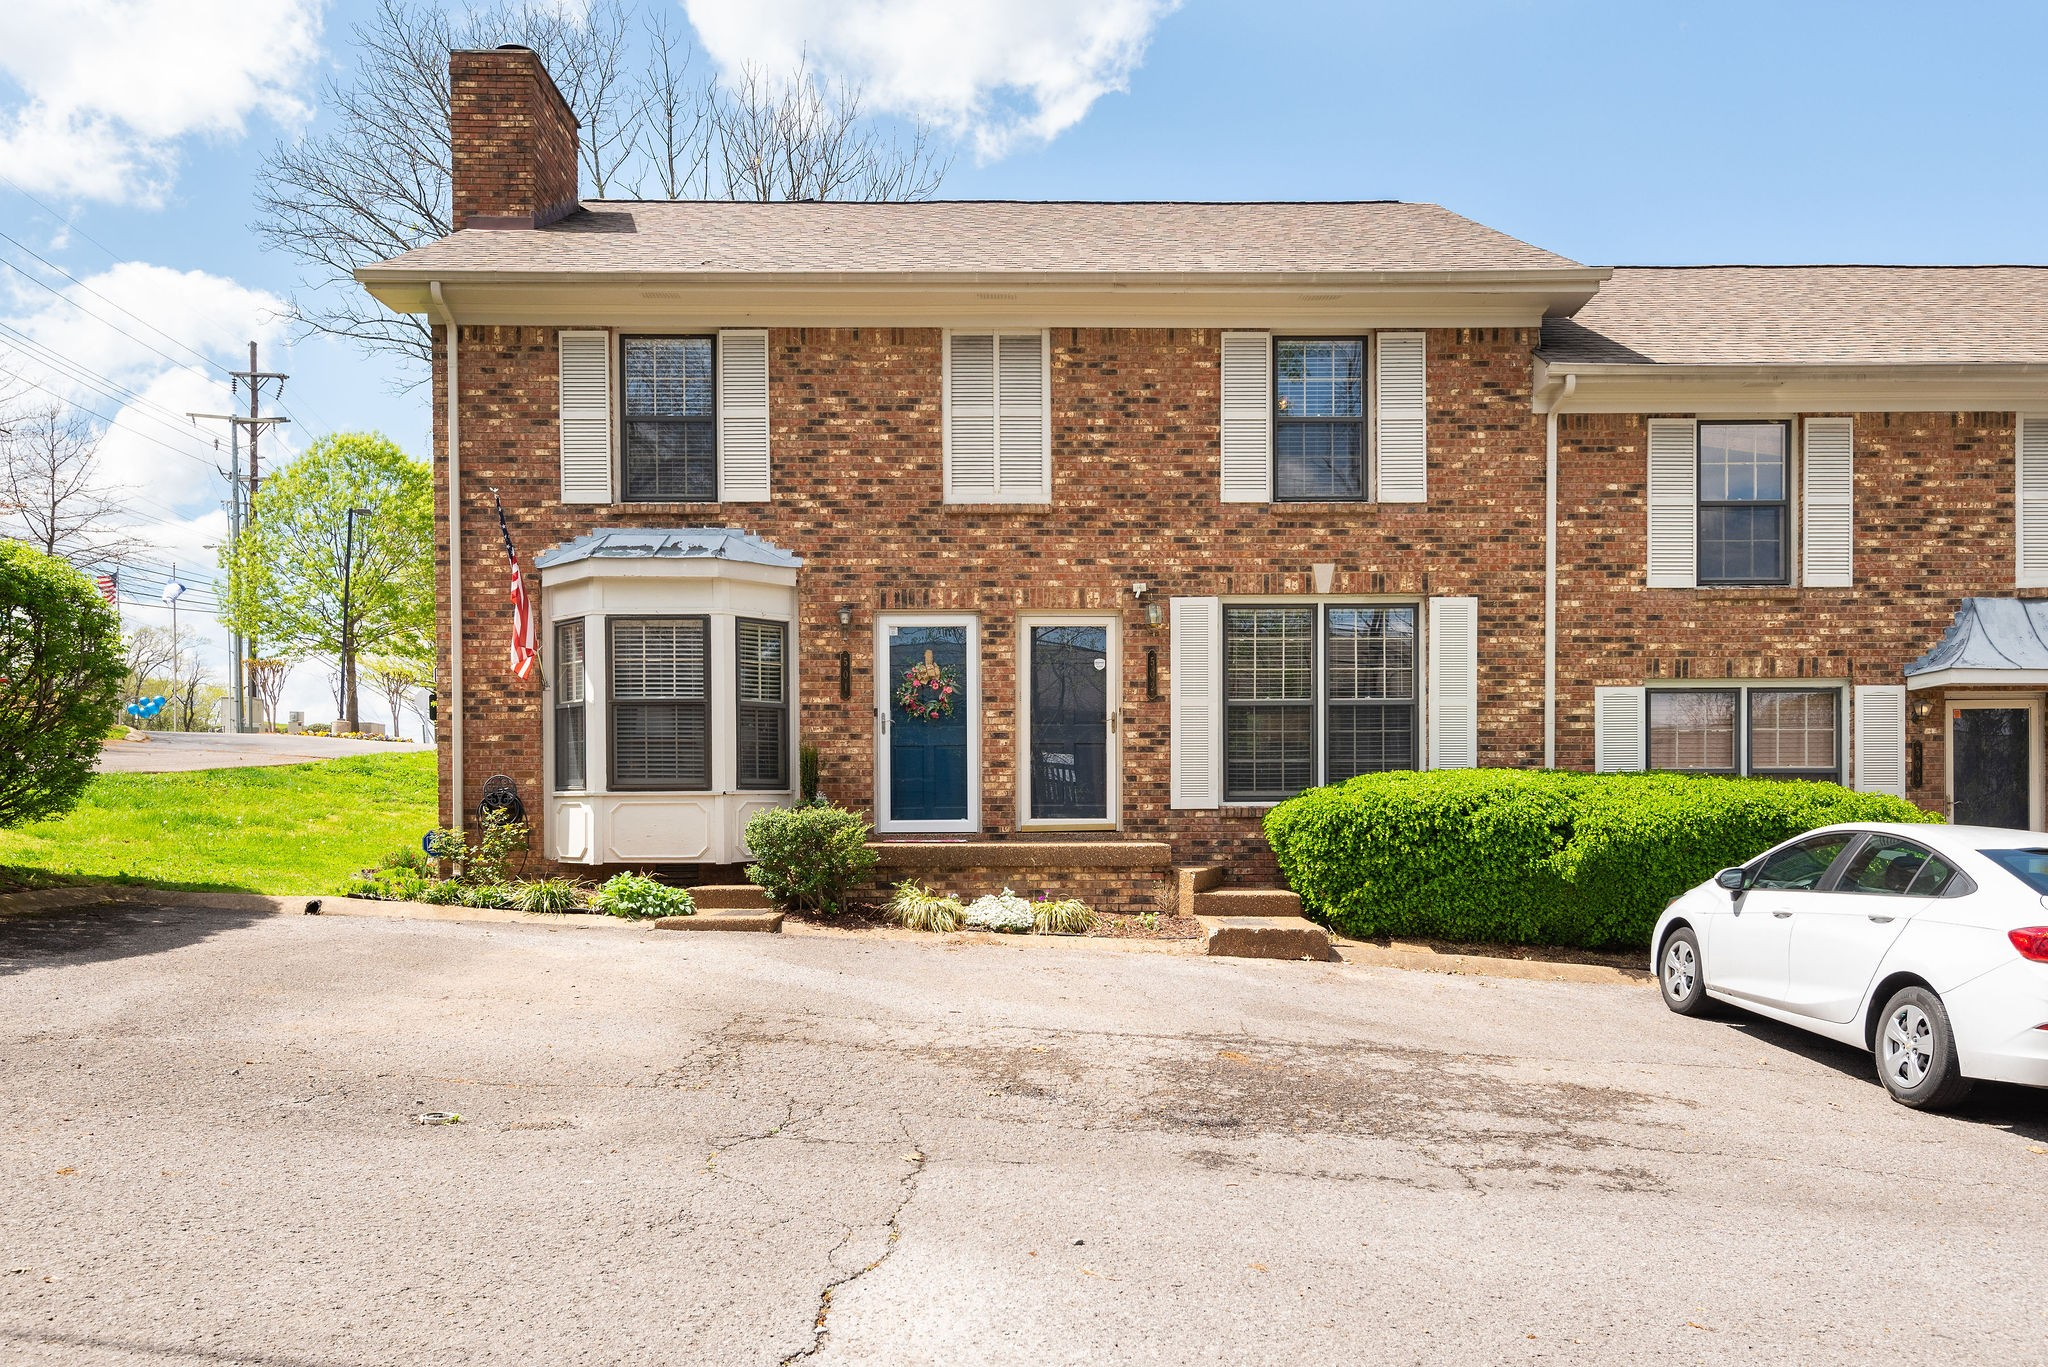 Renovated town-home in great location. Large Bedrooms, open living area, nice back patio, new HVAC and newer roof & Water Heater. Minutes to I-65, I-24, shops, dining and grocery.  Great to live in or investment.